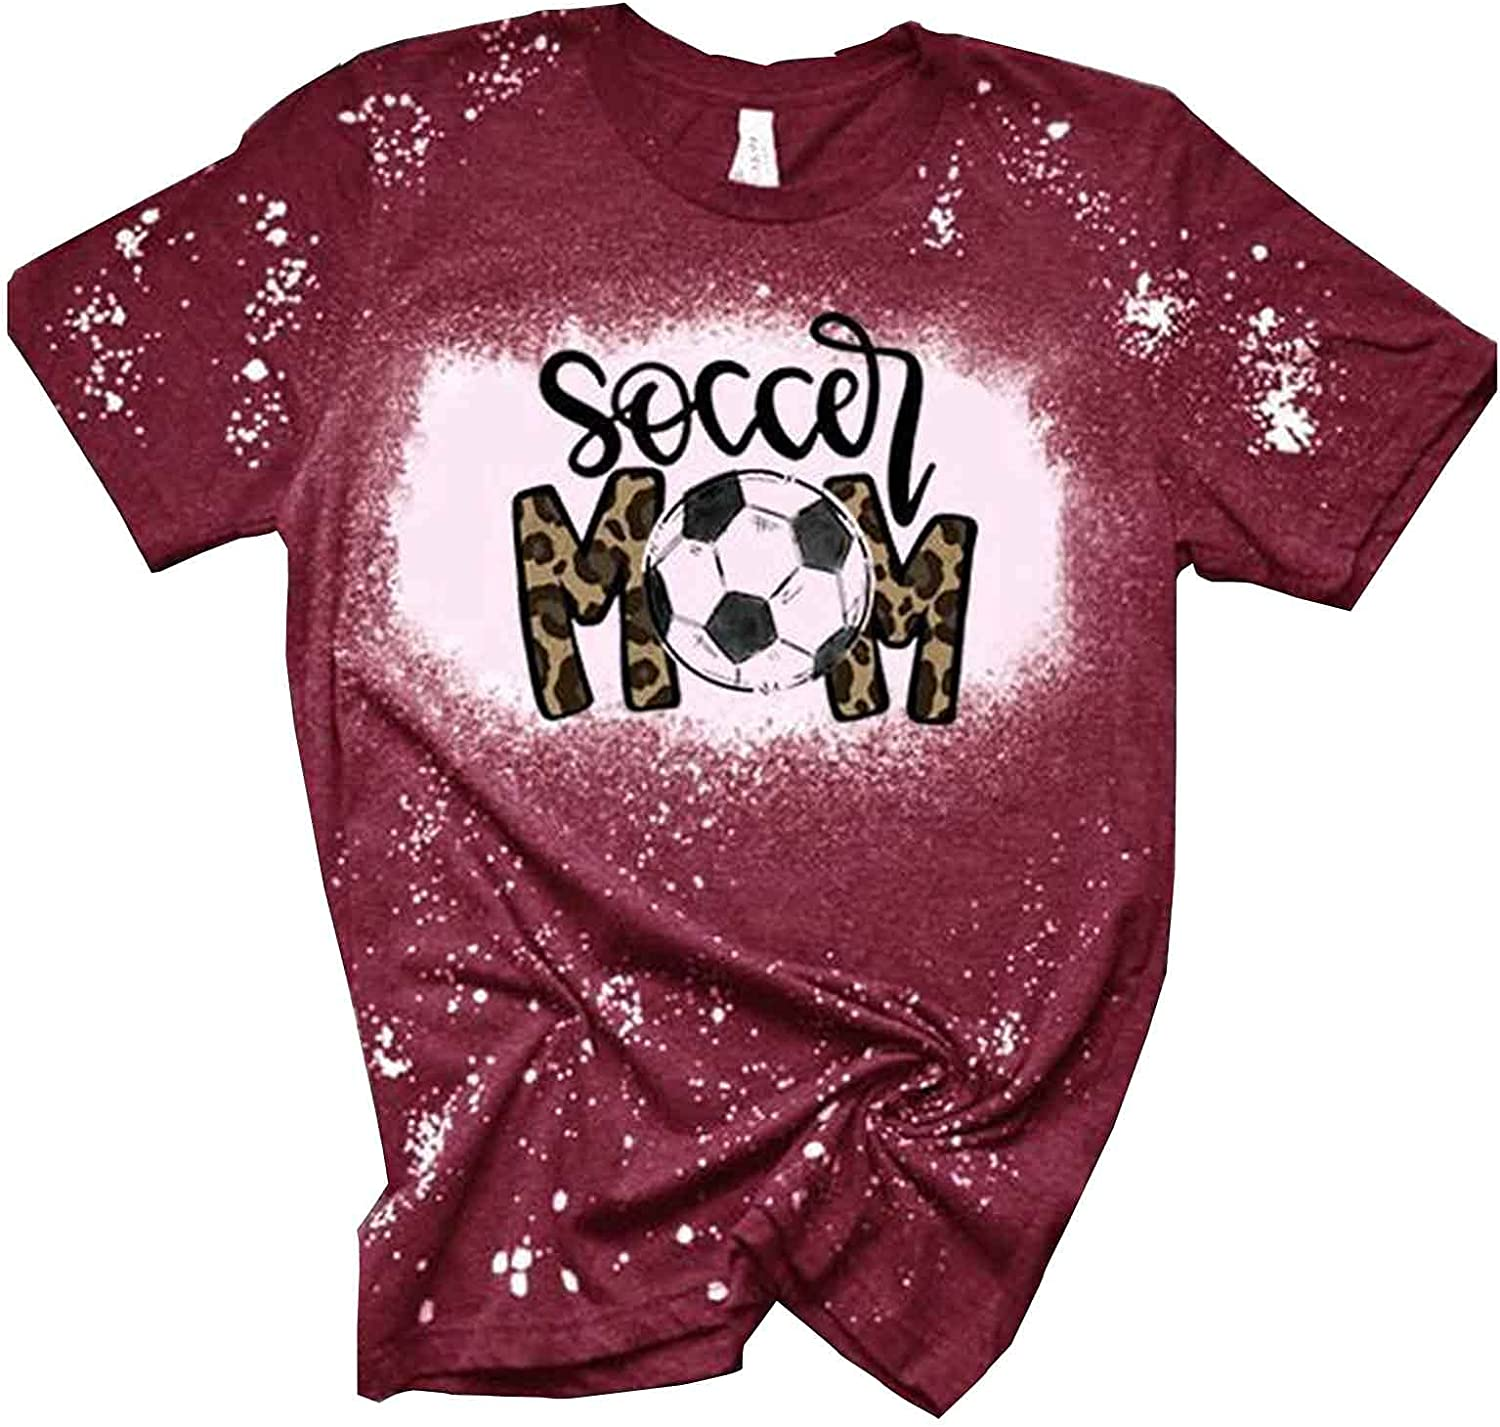 Halloween Shirts for Women Leopard Print Tops Short Sleeve Round Neck Letter Print Graphic Shirts Casual Pullover Tops